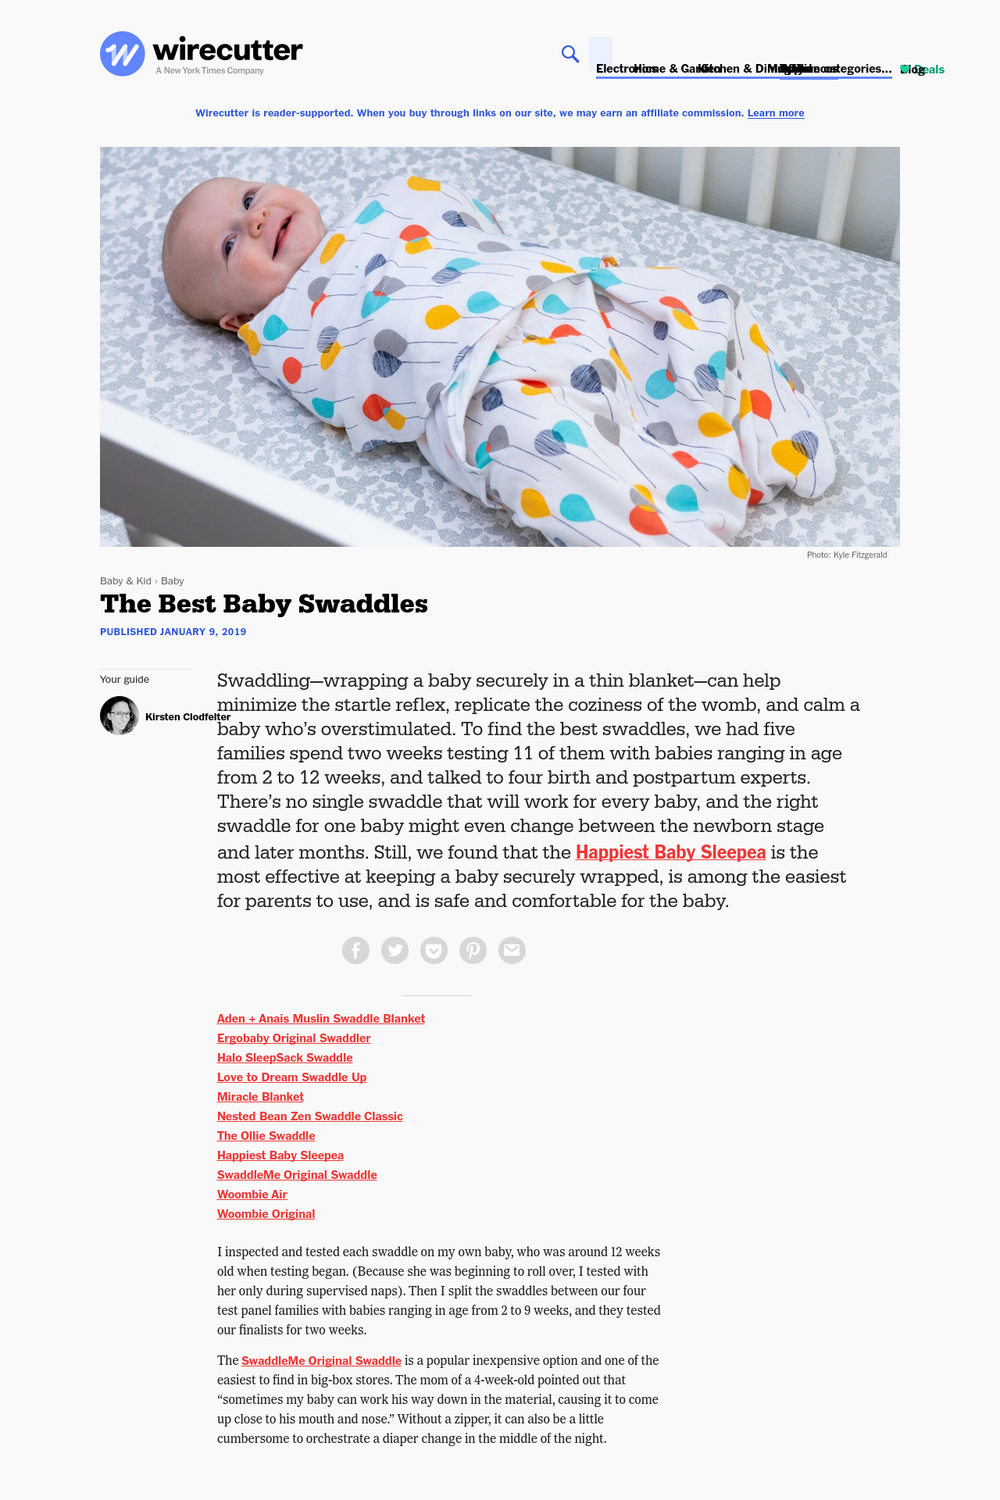 2019.01.09_(New York Times) Wirecutter_SwaddleMe Original Swaddle_cropped 2x3.png